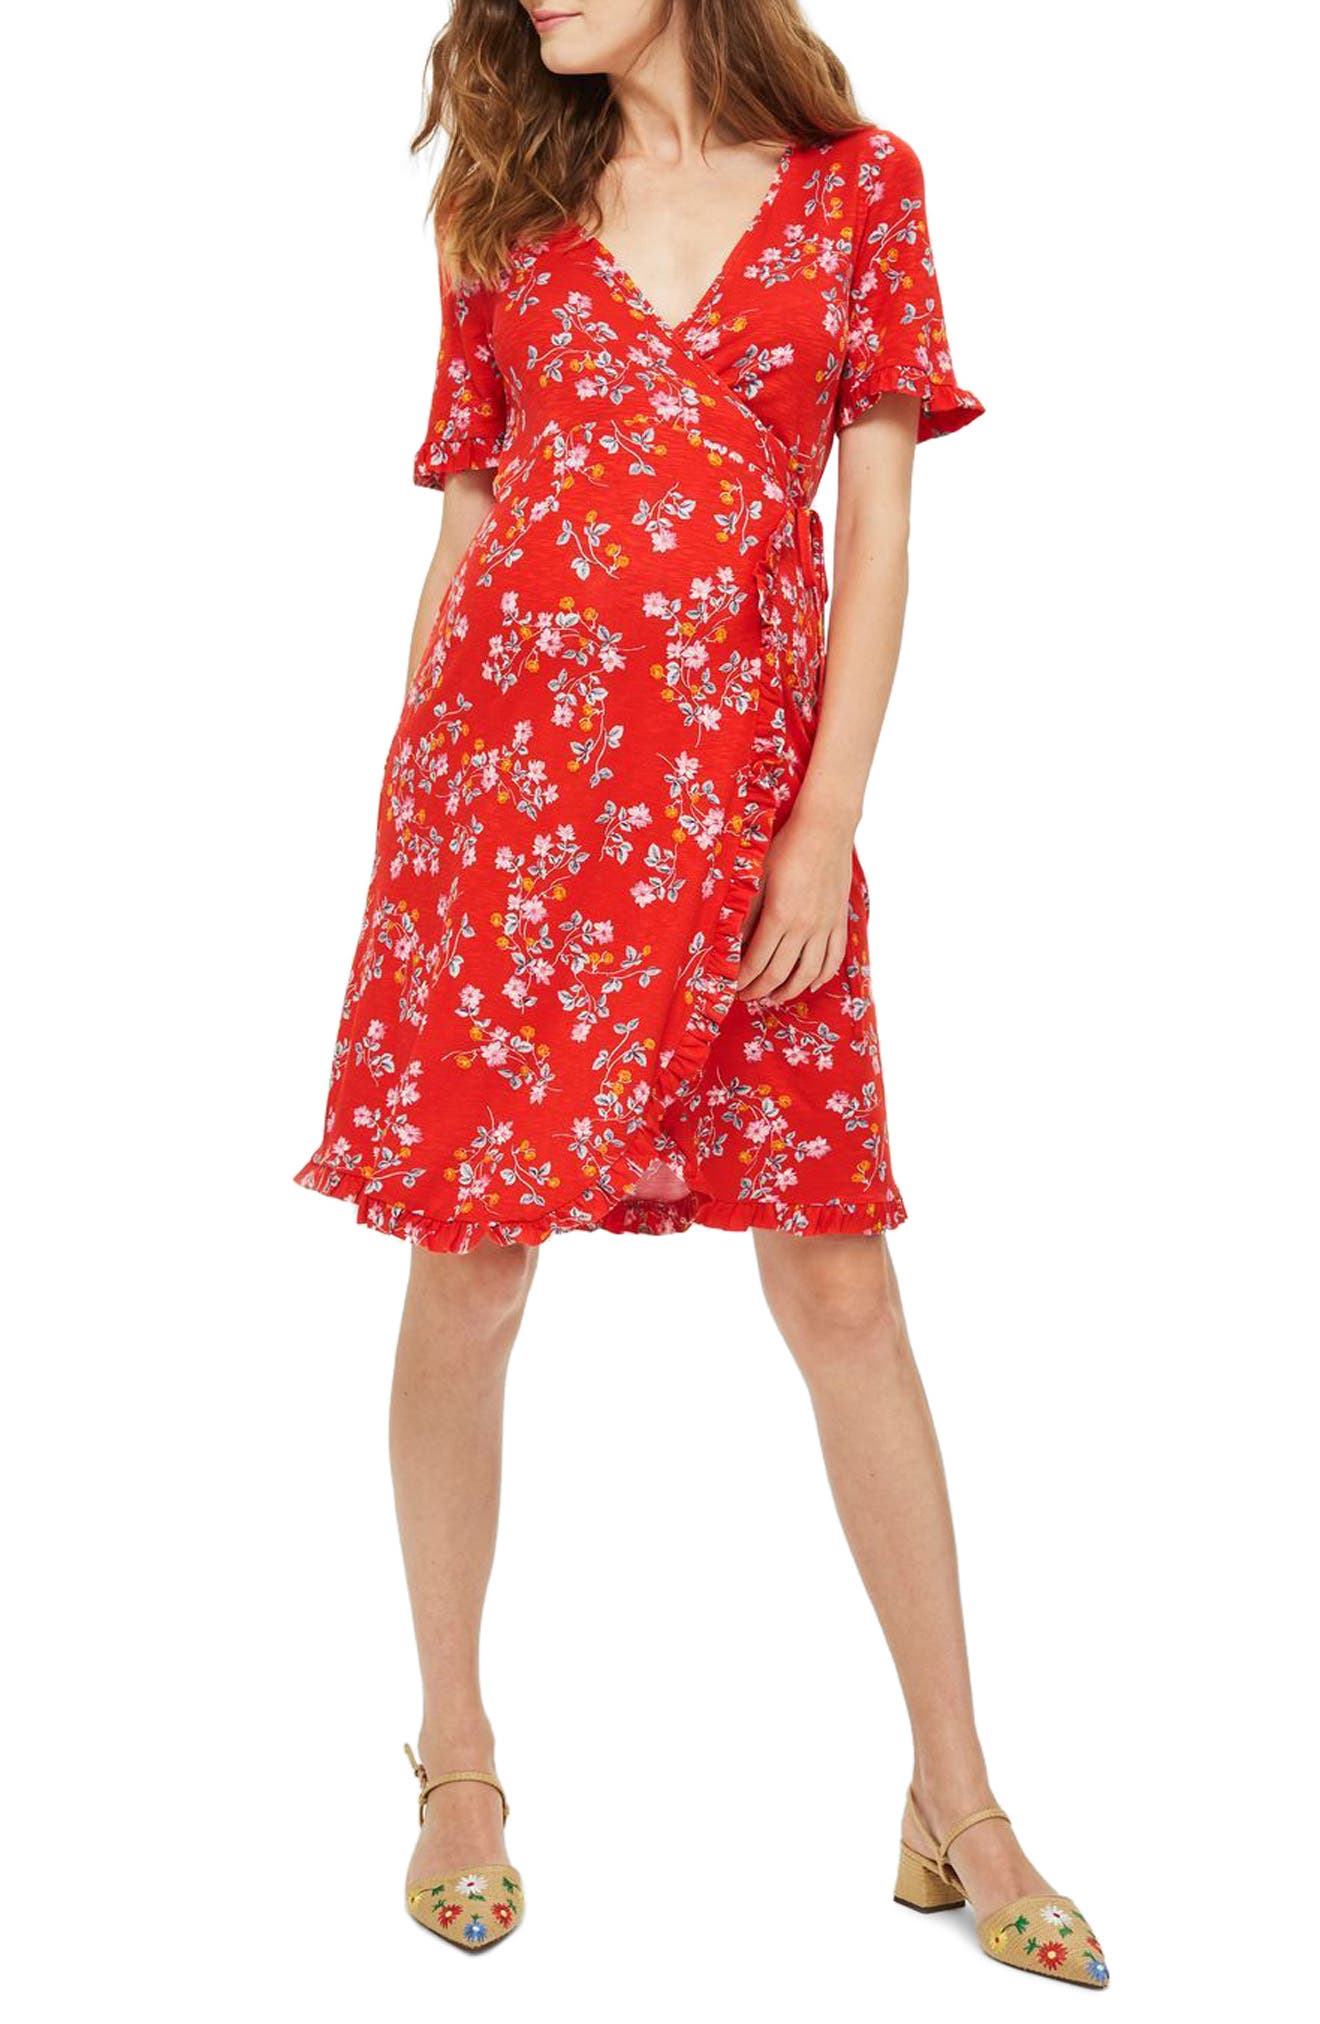 Topshop Ditsy Floral Maternity Wrap Dress